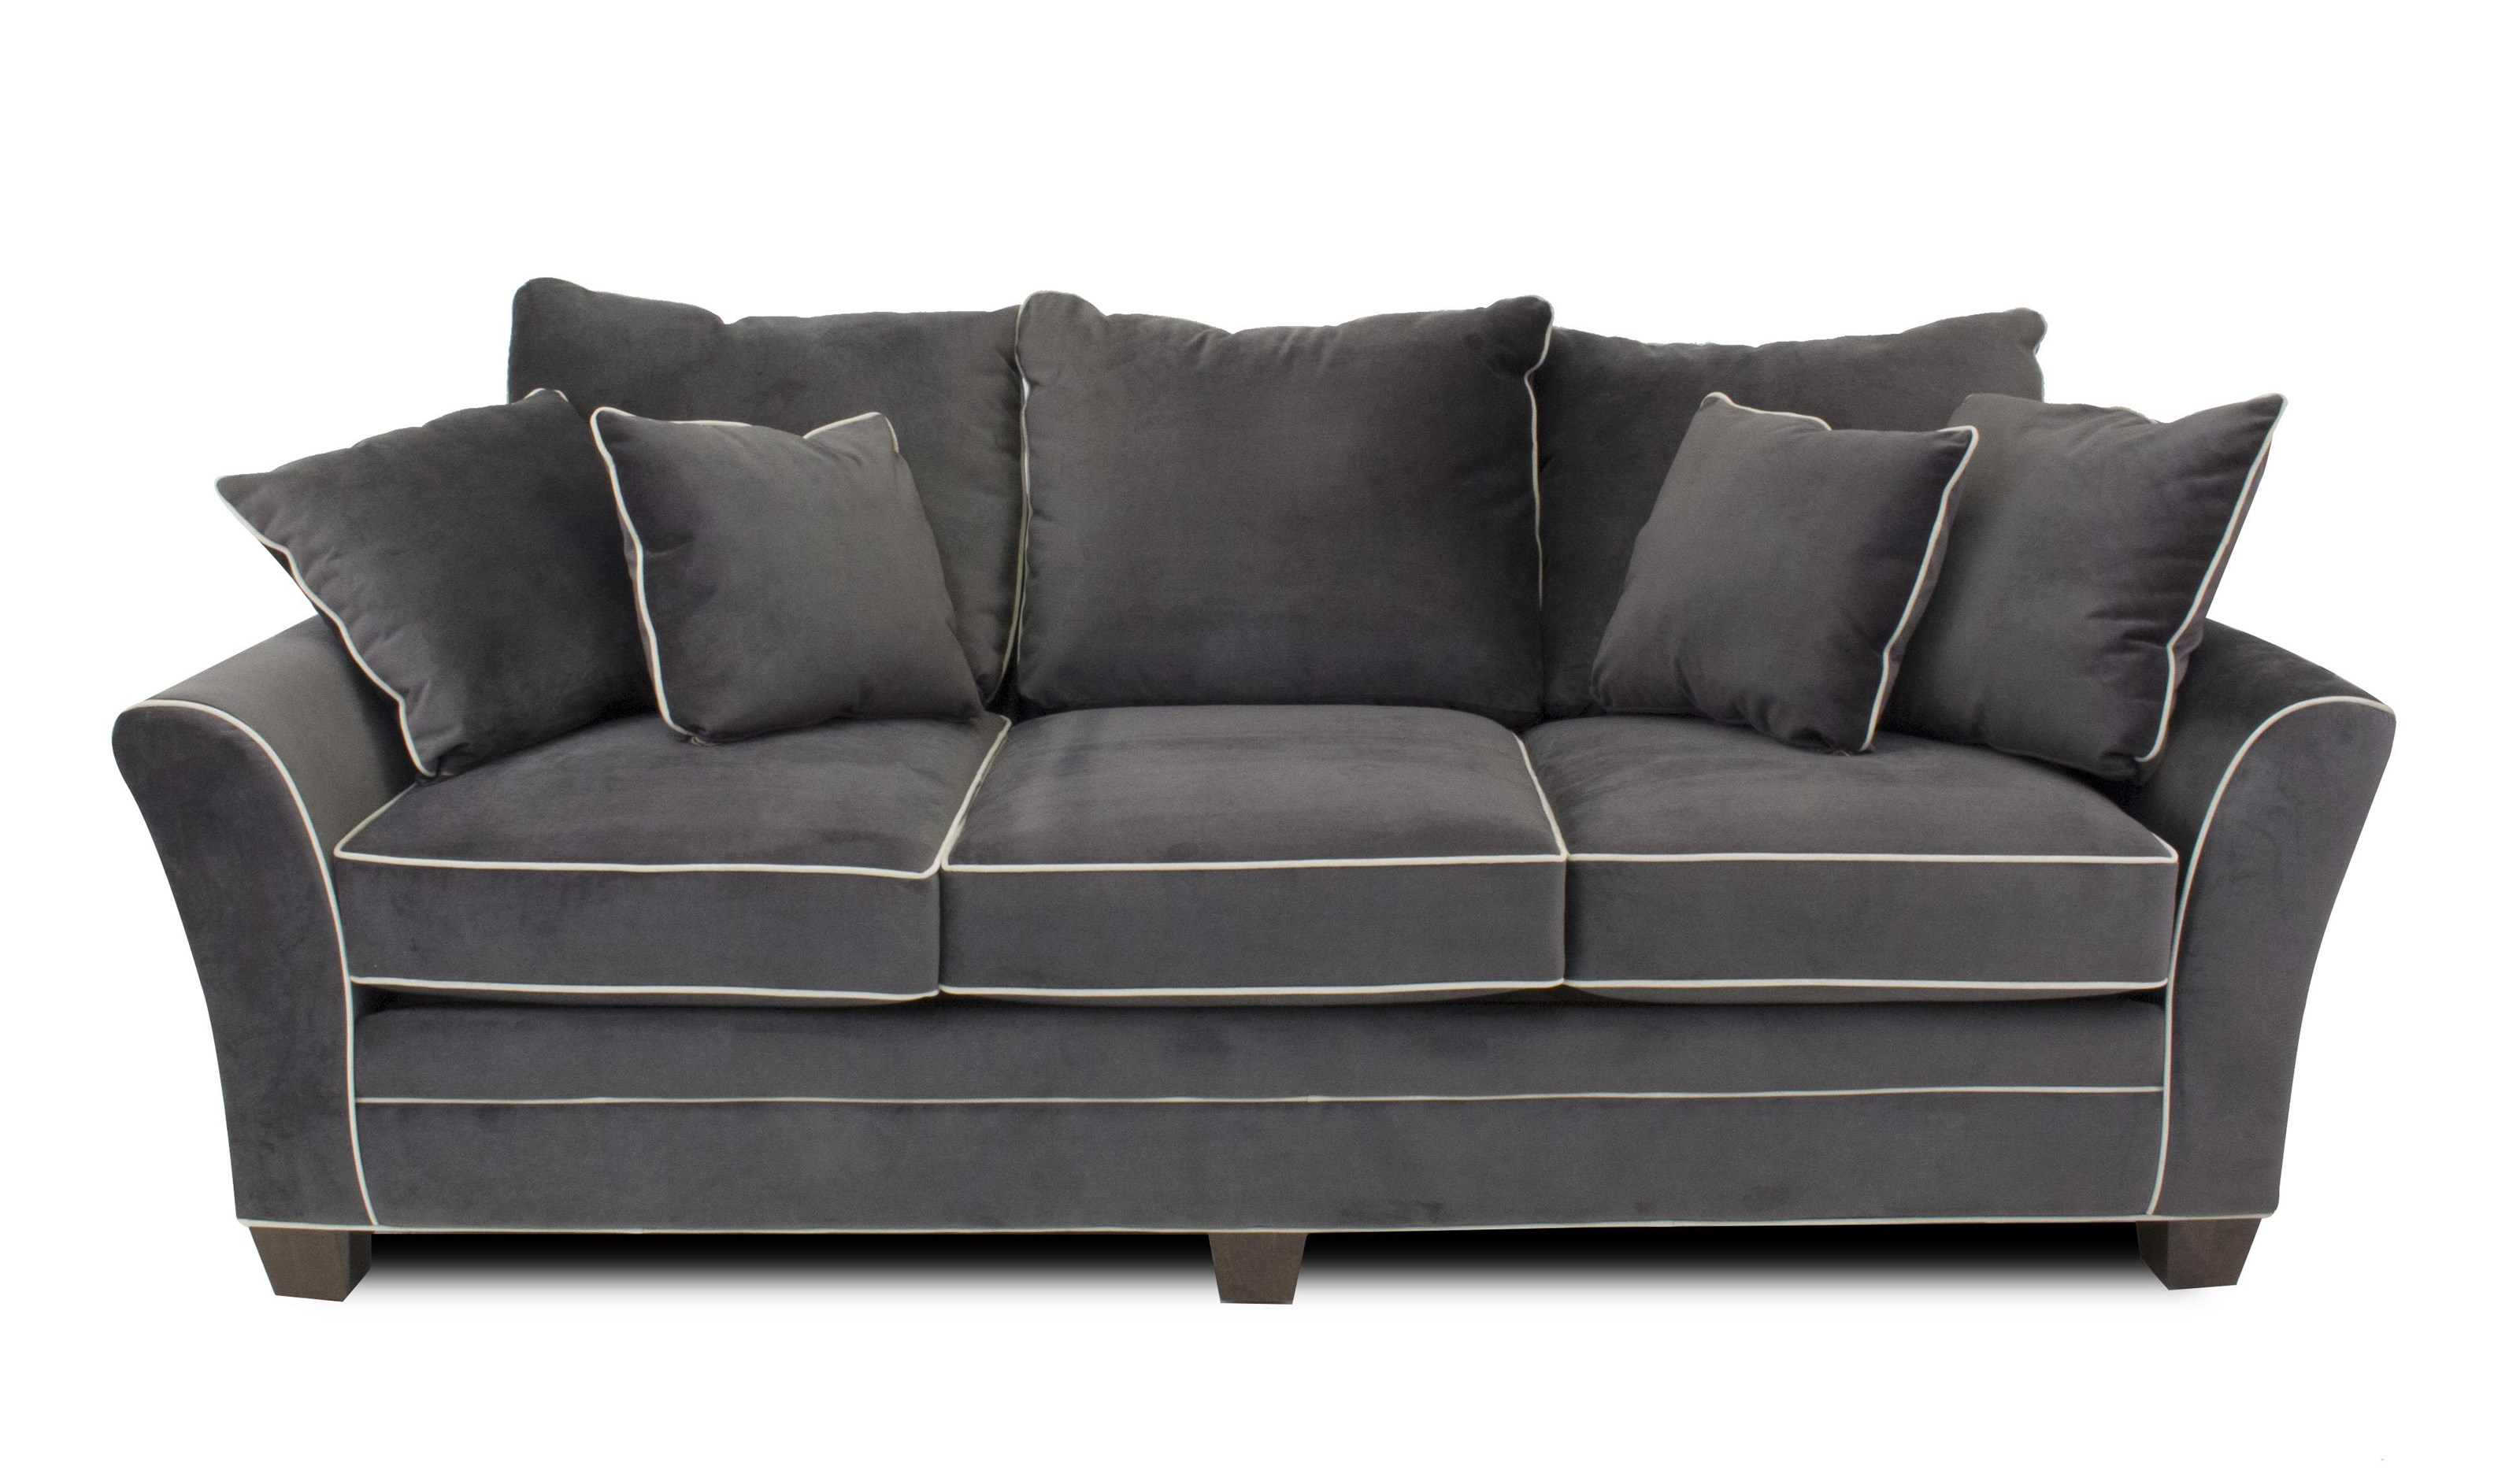 Parker Contemporary Sofa with Block Feet by Metropia at Ruby Gordon Home